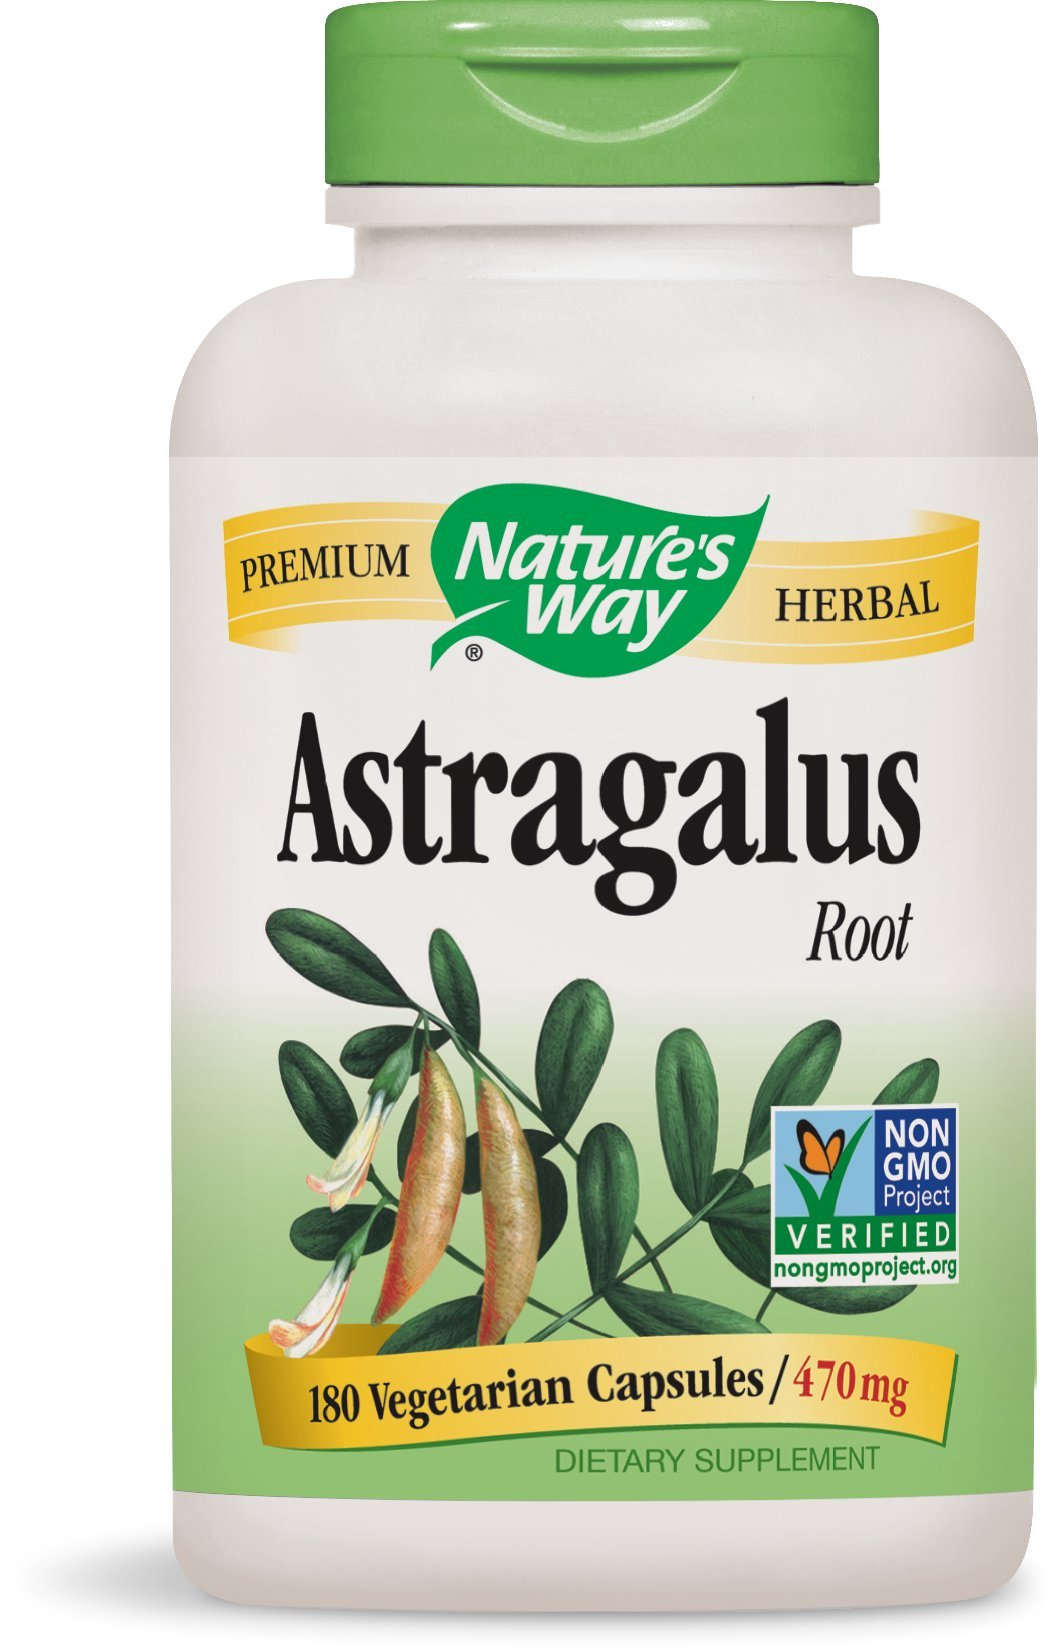 Nature's Way Astragalus Root; 470 mg per serving; TRU-ID Certified; Non-GMO Project; Vegetarian; 180 Vegetarian Capsules